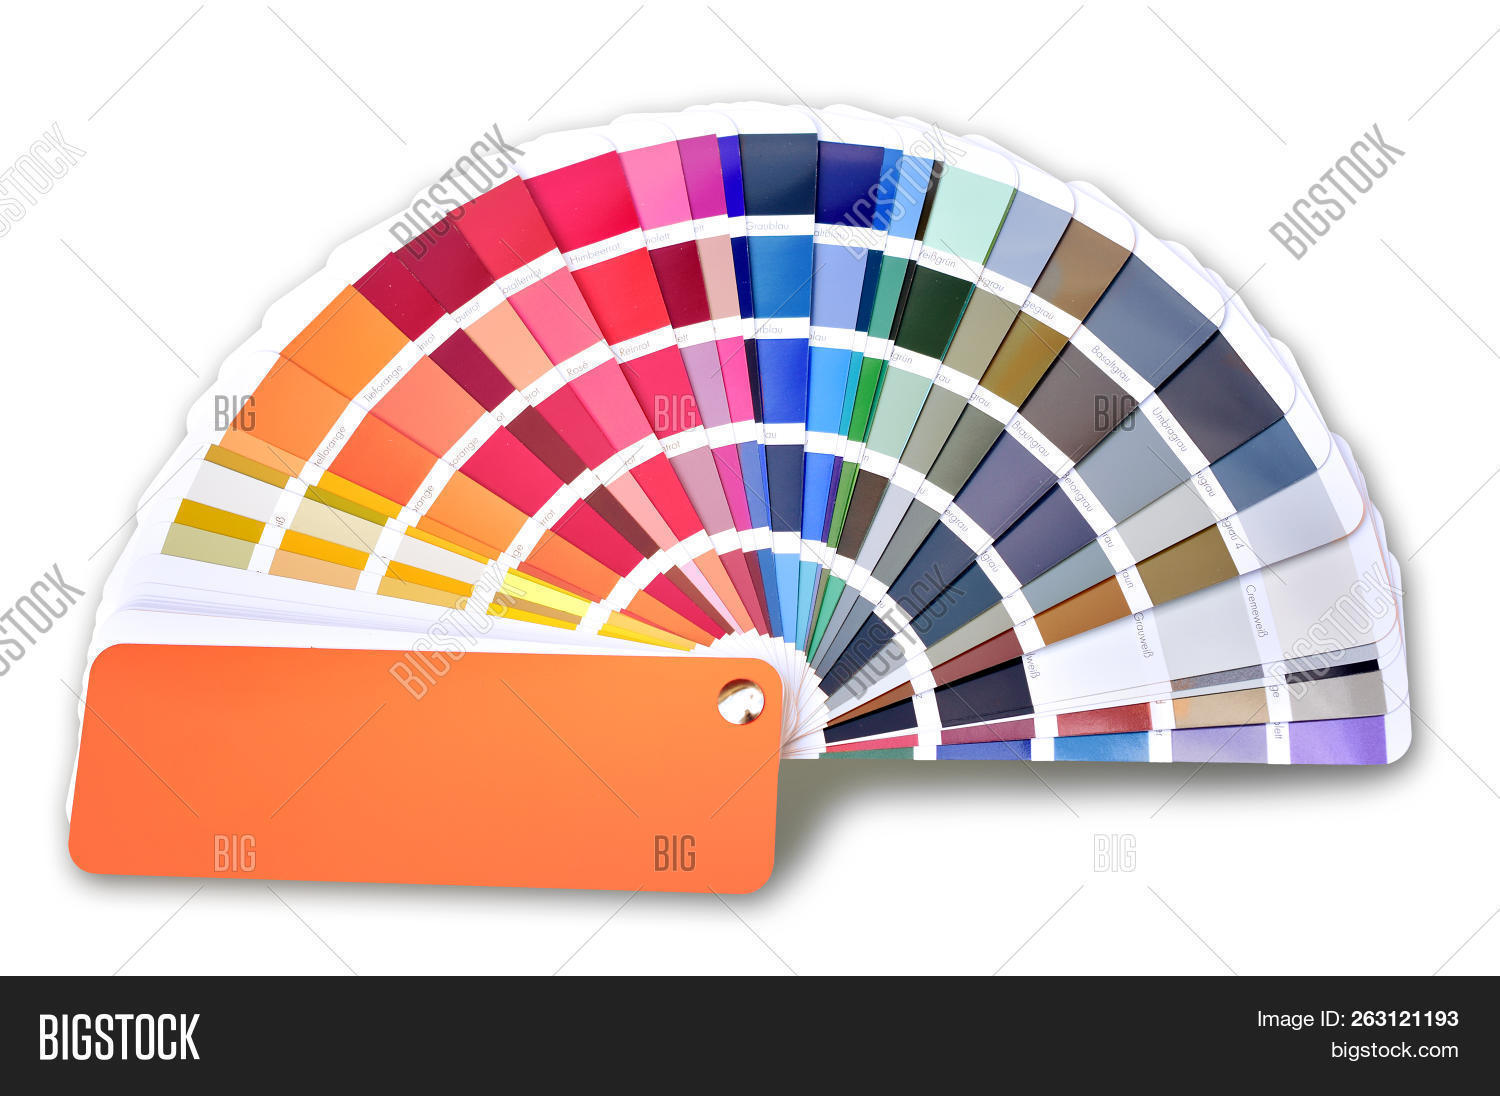 Ral Cmyk Ral Color Fan Cmyk Image Photo Free Trial Bigstock